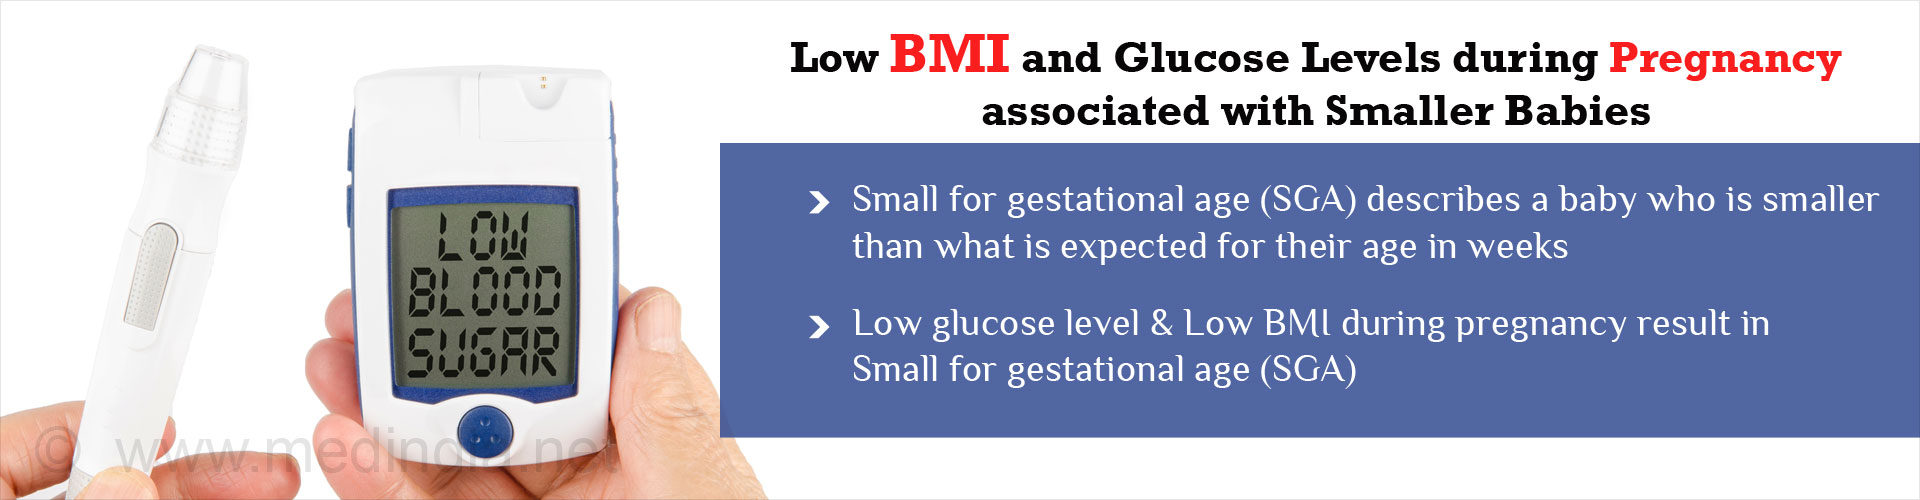 Low Glucose Levels in Underweight Pregnant Japanese Women Associated With Smaller Babies